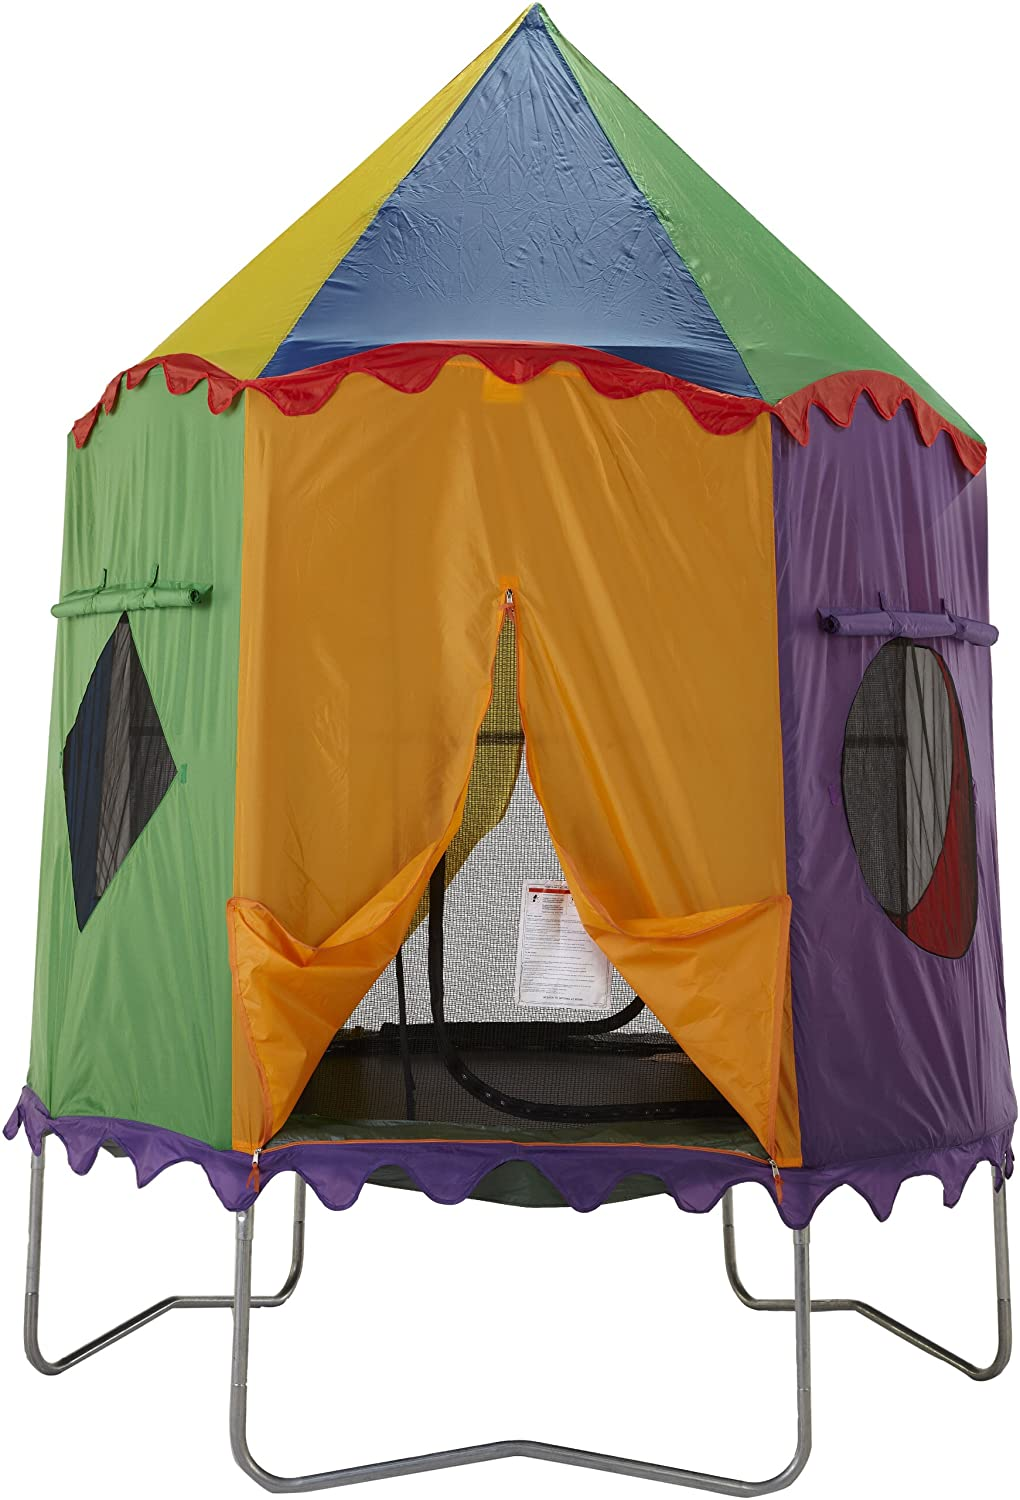 Amazon.com  Bazoongi Circus Tr&oline Tent for 7.5-Feet Jump Pod  Tr&oline Enclosures  Sports u0026 Outdoors  sc 1 st  Amazon.com & Amazon.com : Bazoongi Circus Trampoline Tent for 7.5-Feet Jump Pod ...